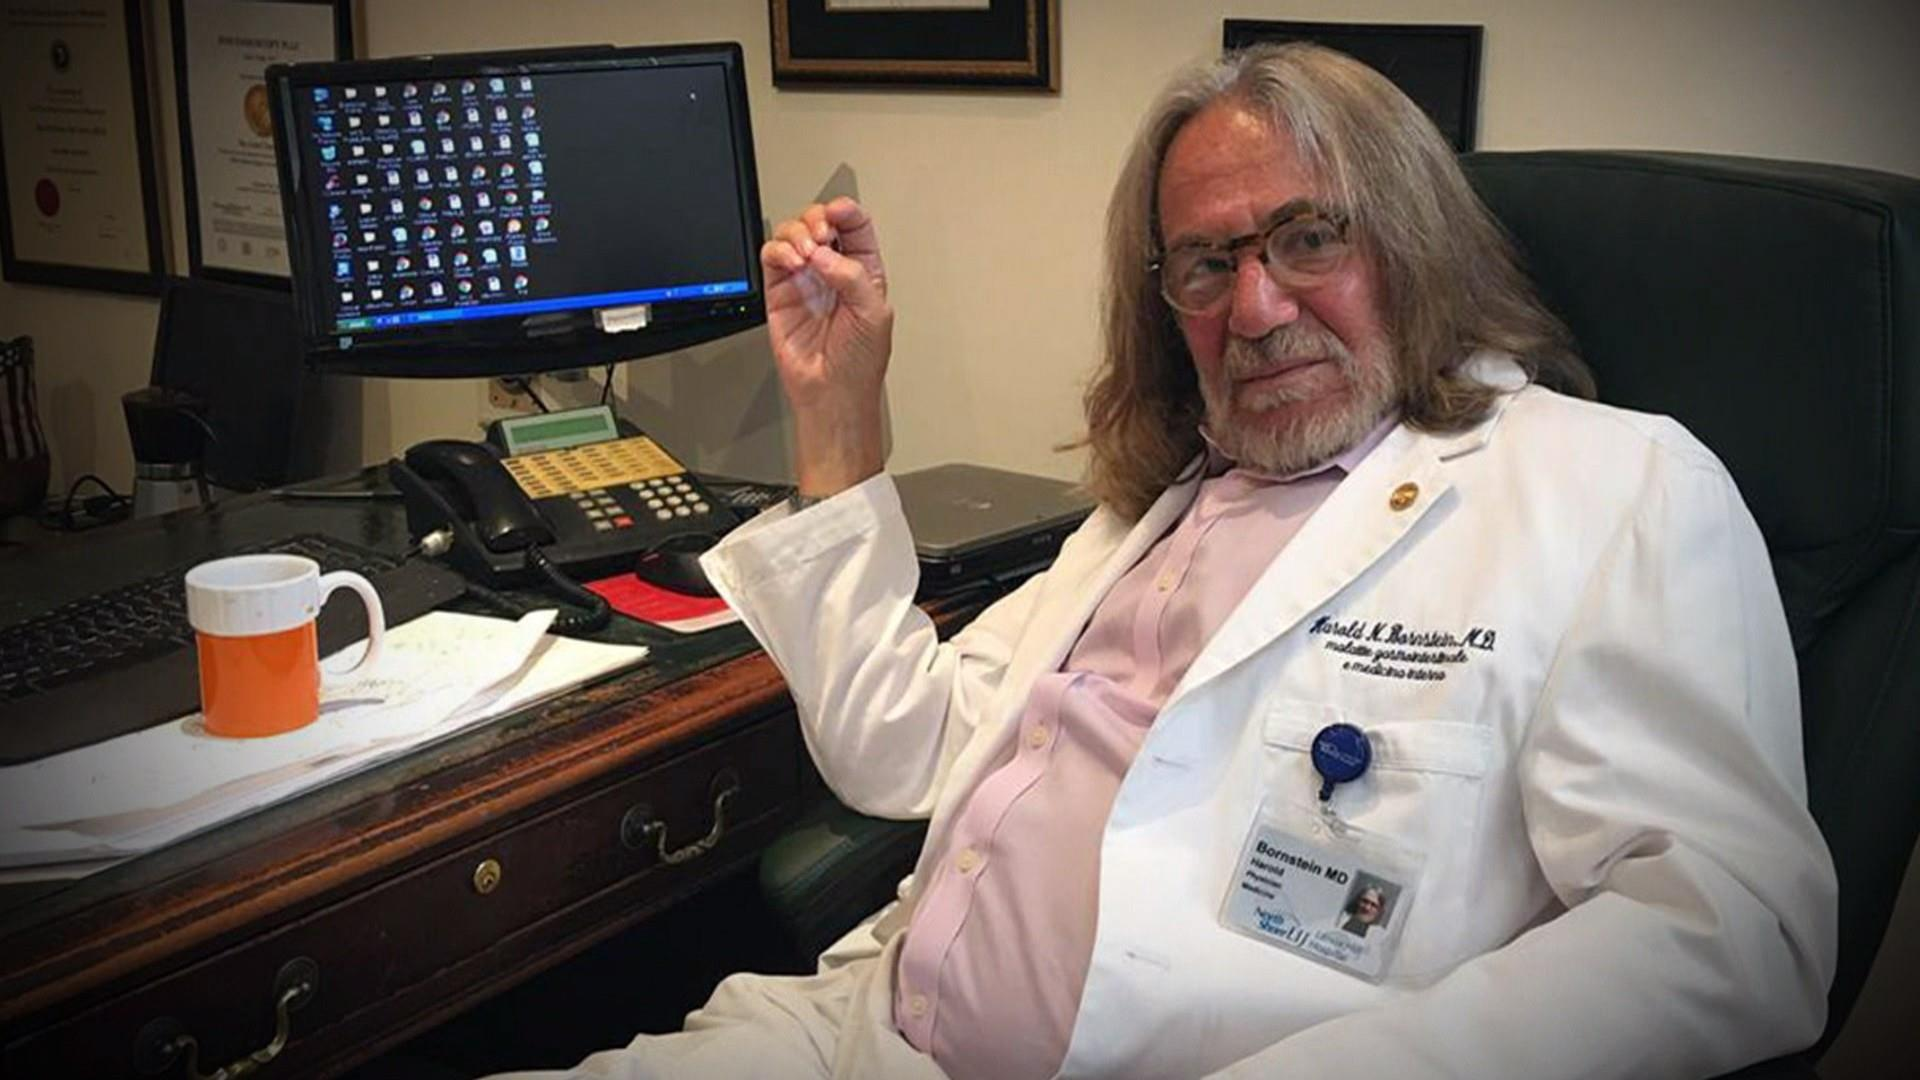 Trump doctor Harold Bornstein says bodyguard, lawyer 'raided' his office, took medical files